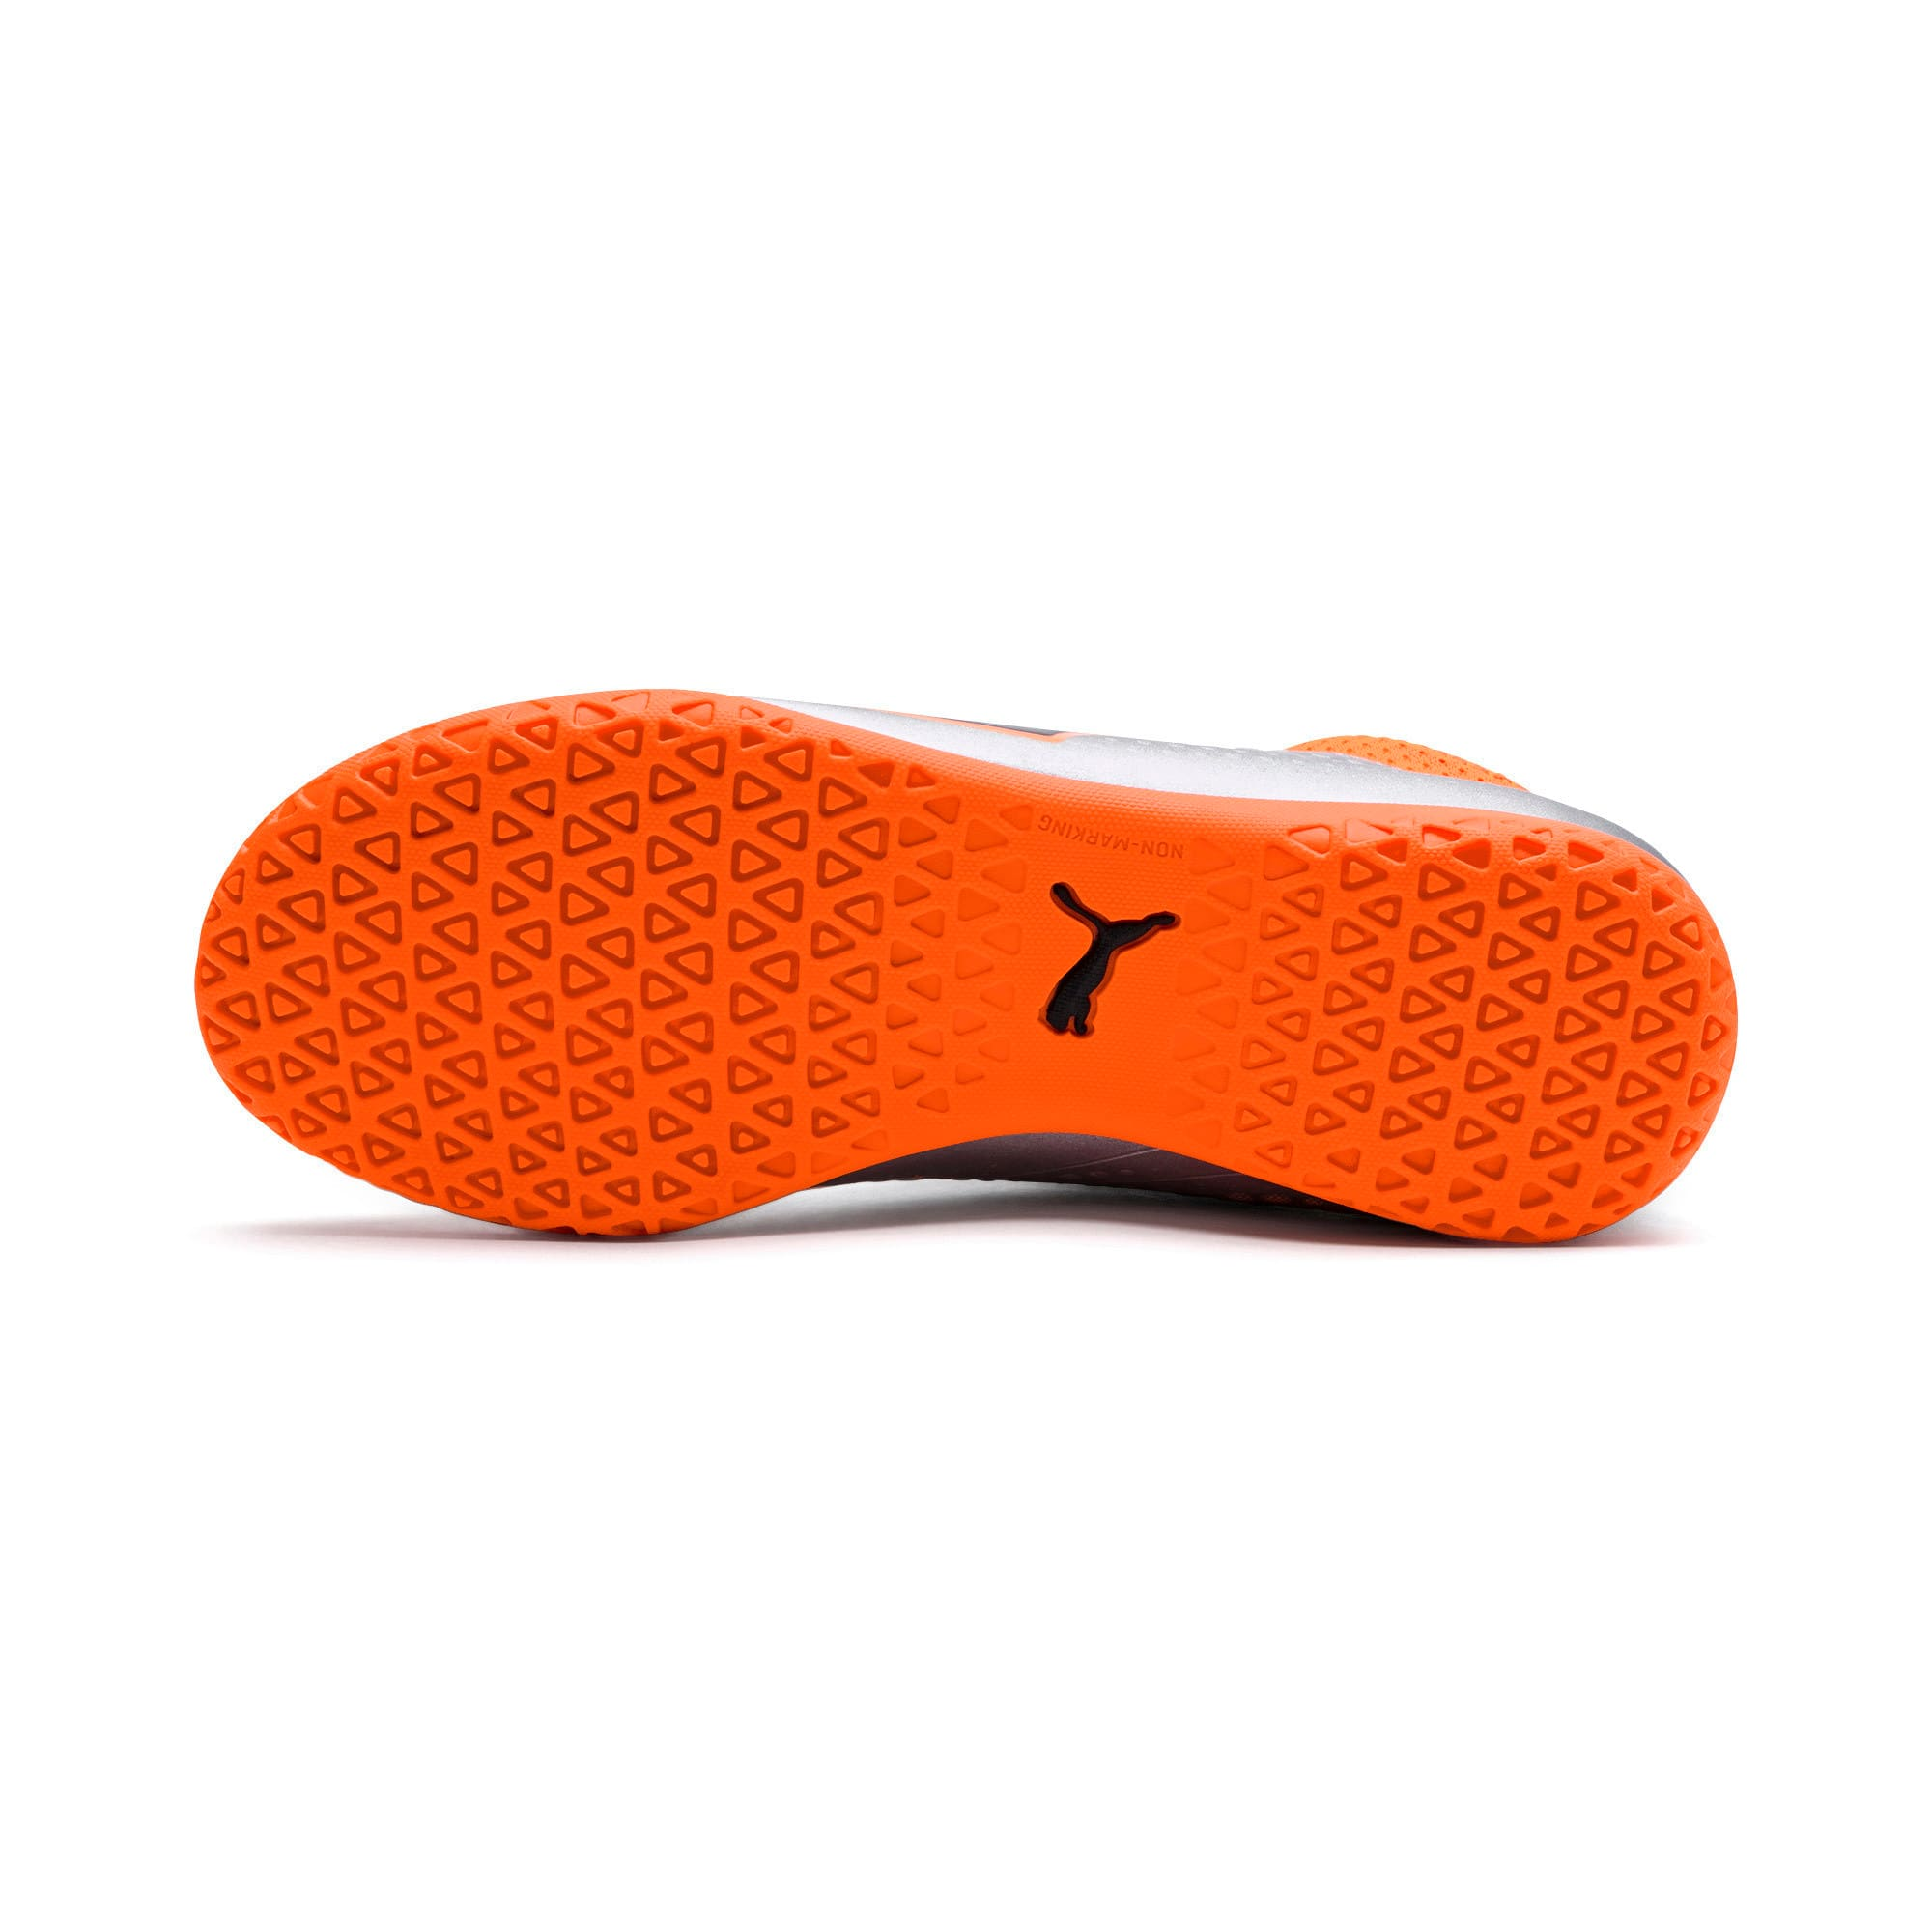 Thumbnail 4 of PUMA ONE 4 Synthetic IT Kids' Football Shoes, Silver-Orange-Black, medium-IND